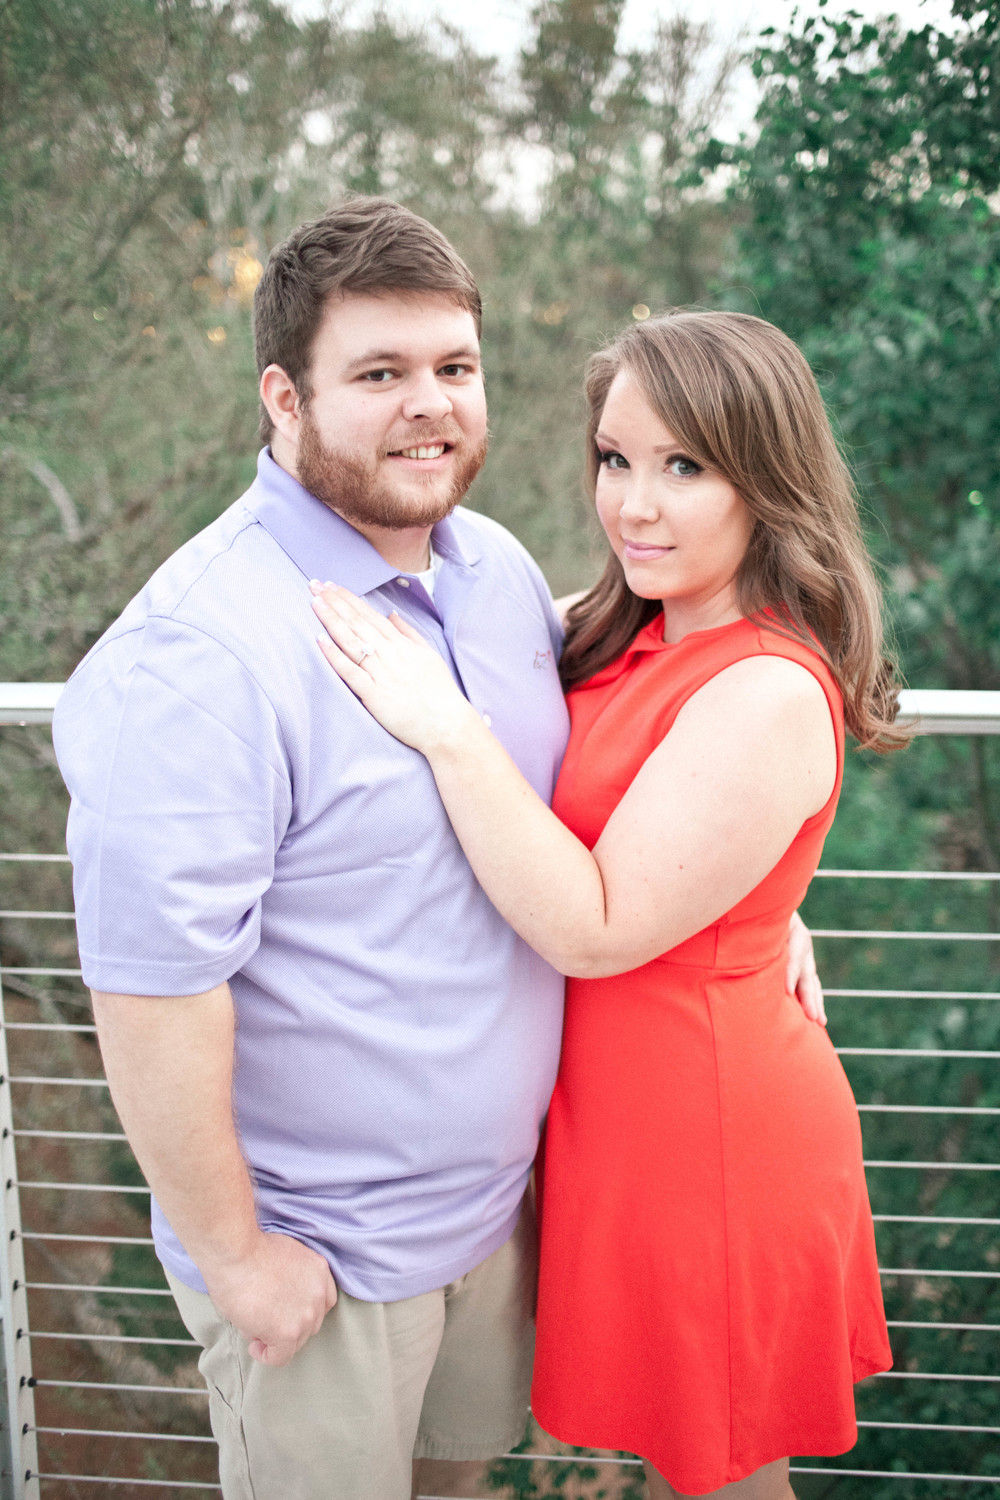 zach_gabbie_engagement_poured_out_photography-63.jpg